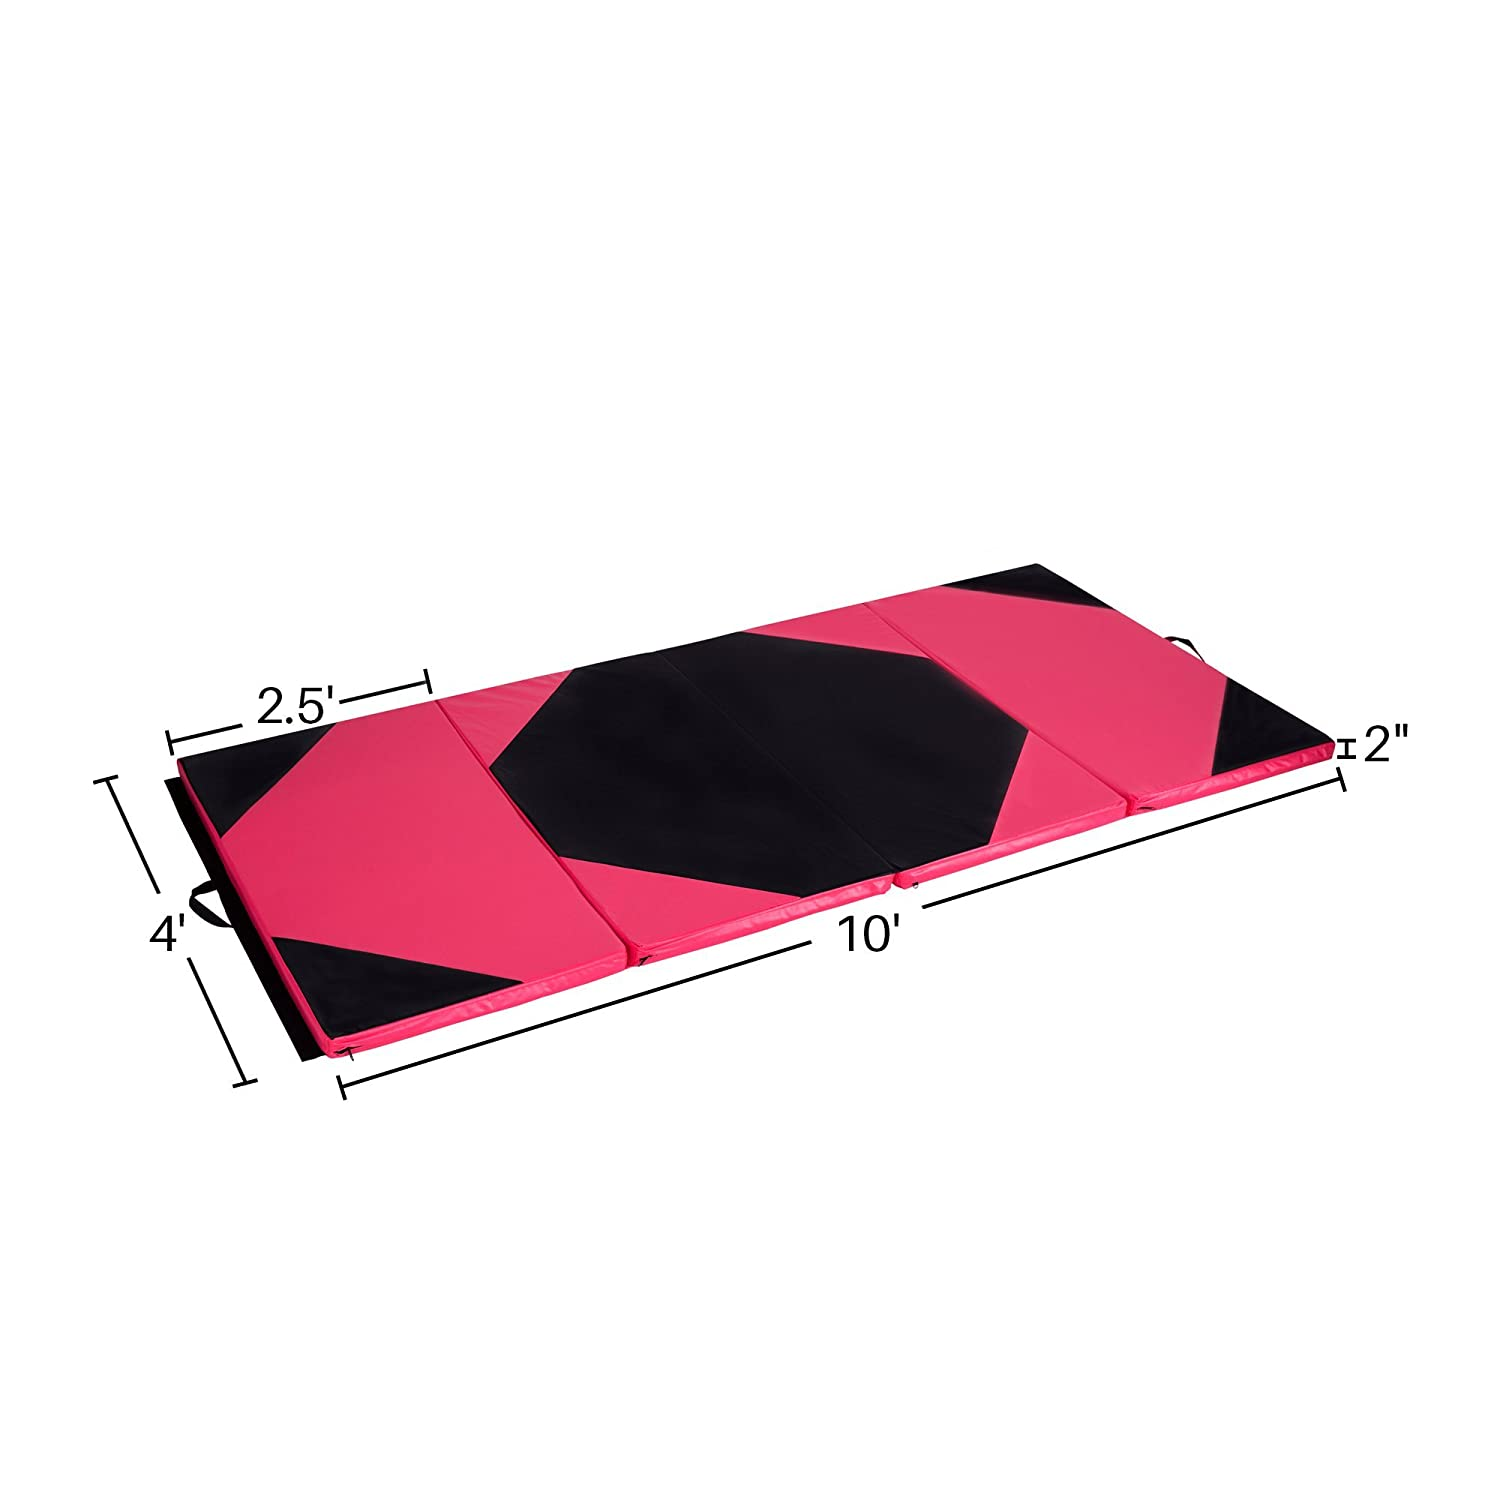 Cloud Mountain 4x10x2 Gymnastics Mat Tumbling Mat Foldable Thick Panel Fitness Exercise Gym Mat Handle Compatibility Side Connection Tape Aerobics Yoga Cheerlanding Stretching Multi Color